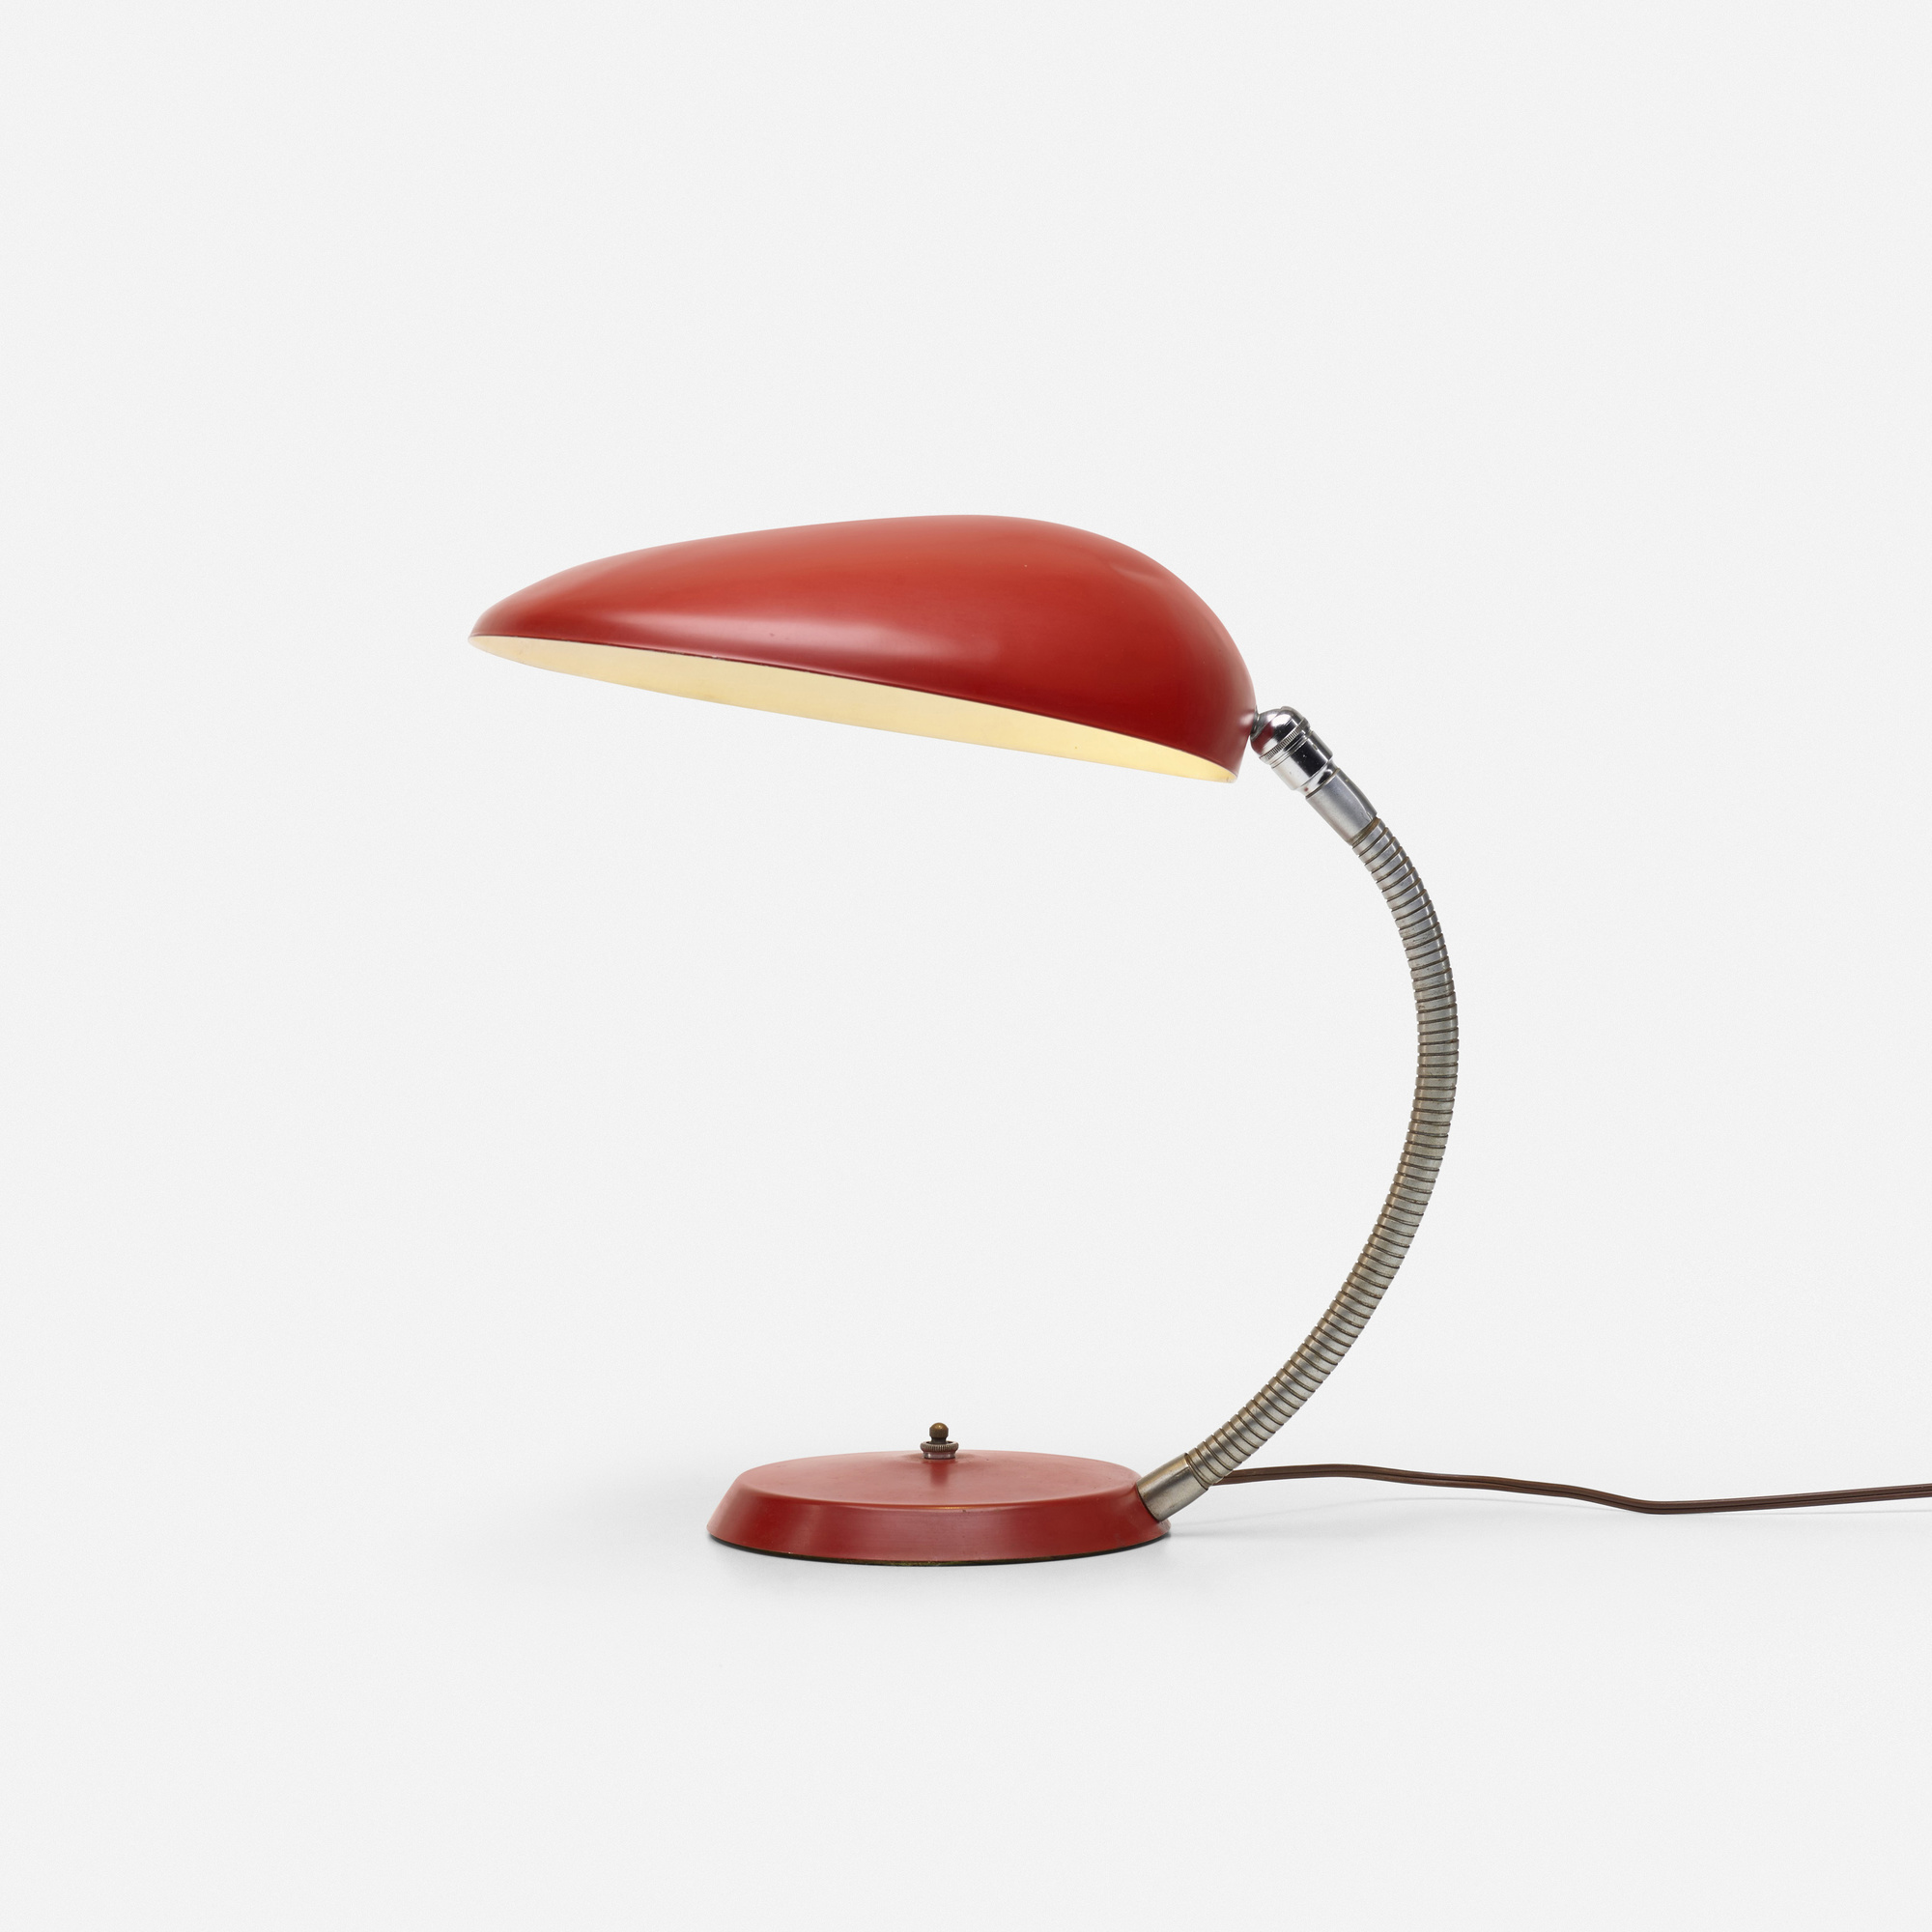 grossman lighting. 161: Greta Magnusson Grossman / Cobra Desk Lamp (2 Of 2) Lighting